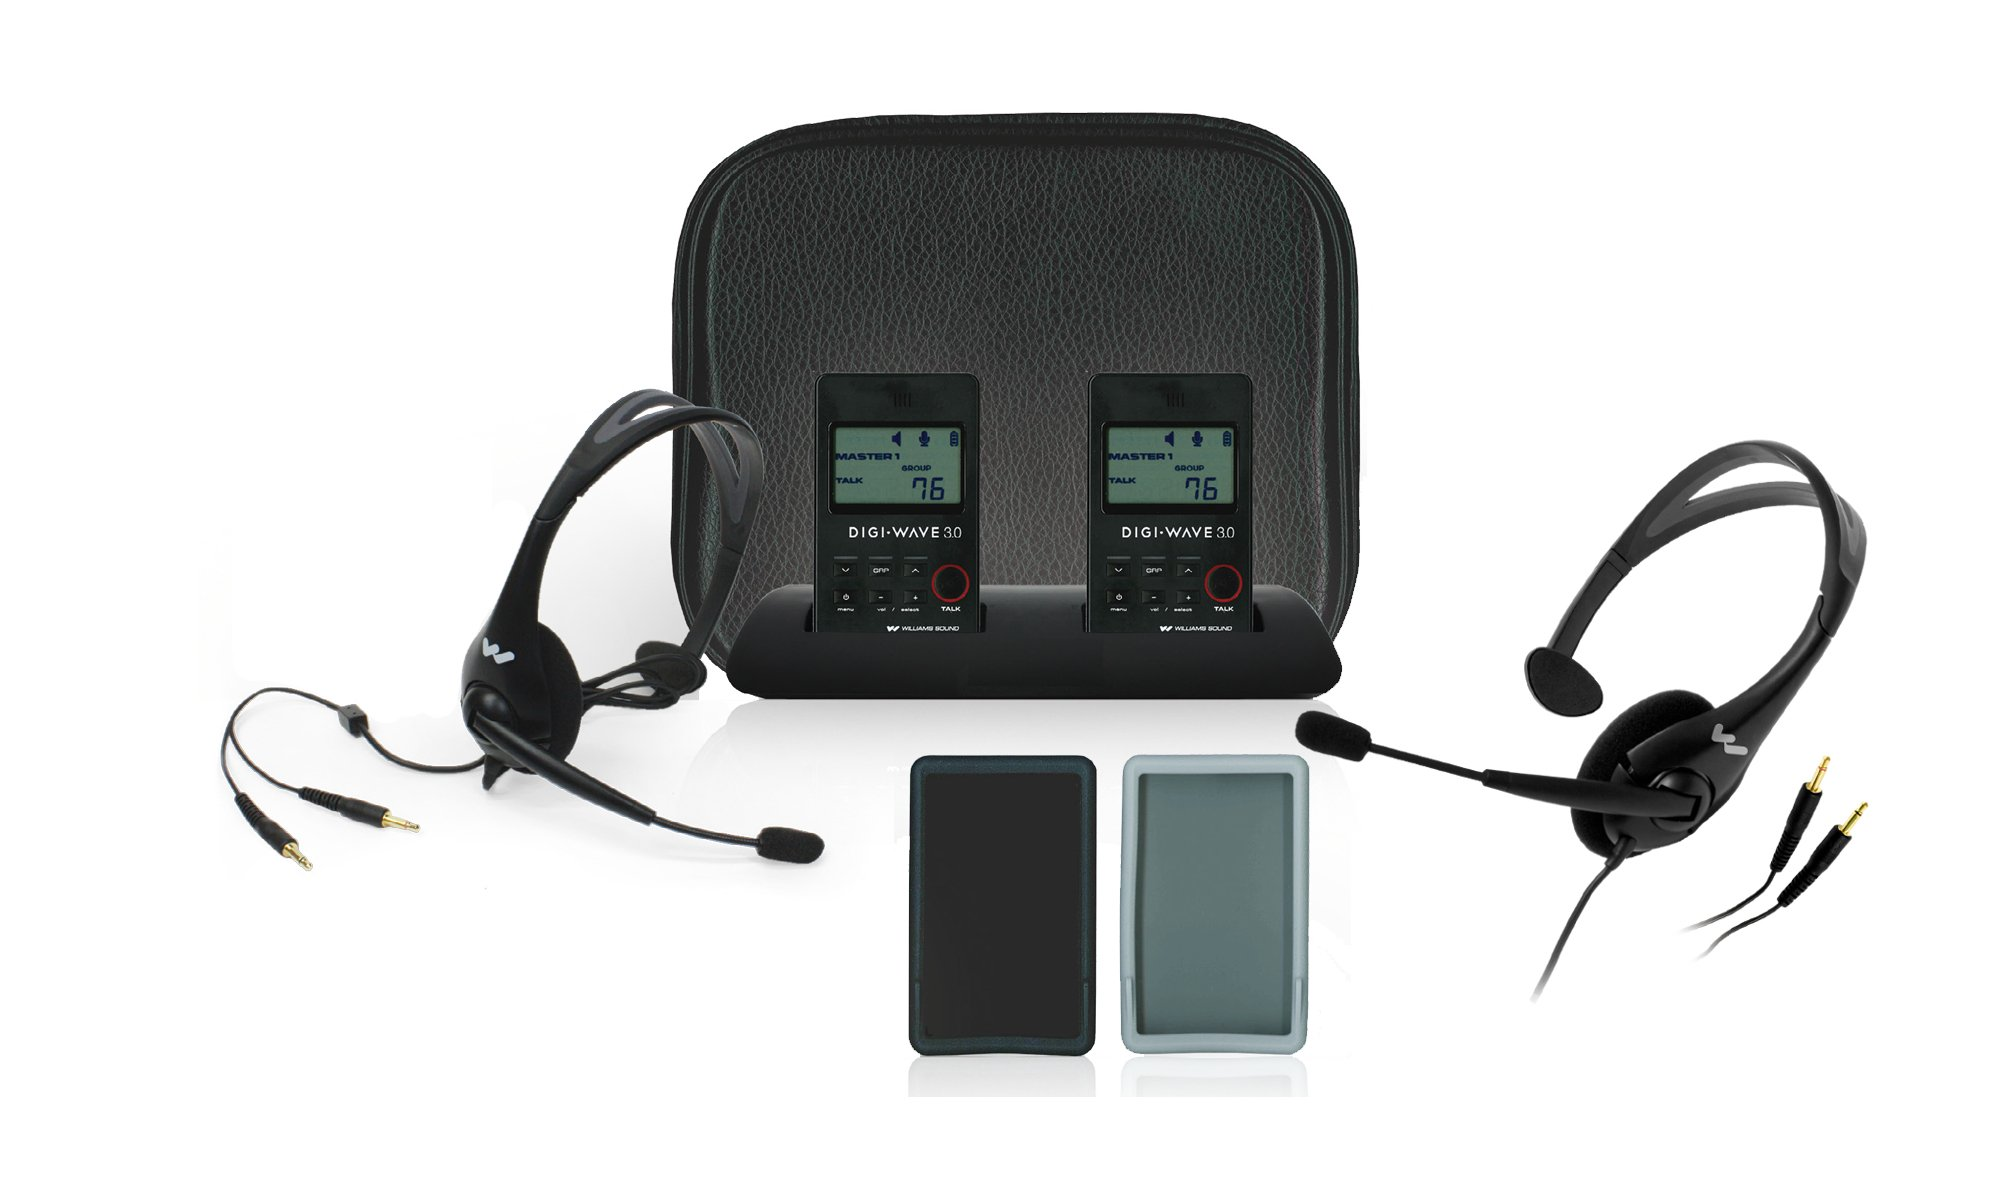 DigiWave 2.4 GHz Digital Intercom system